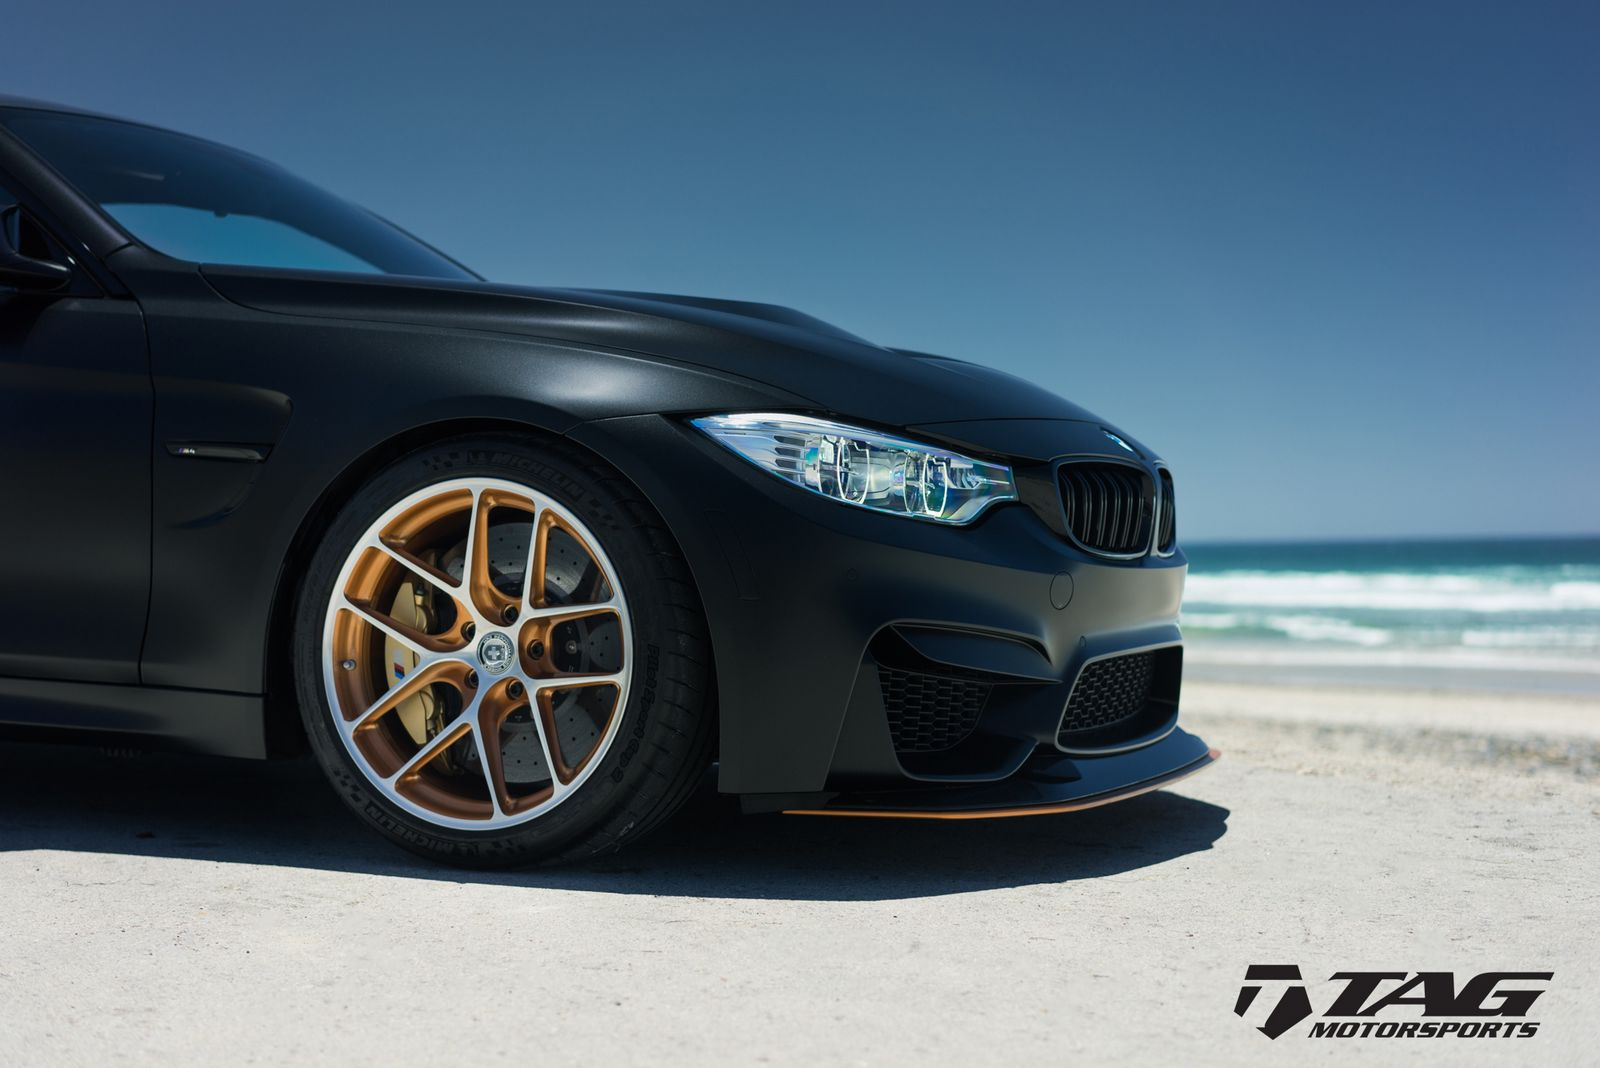 Bmw M4 Gts Looks Ready To Attack In Matte Black Car News